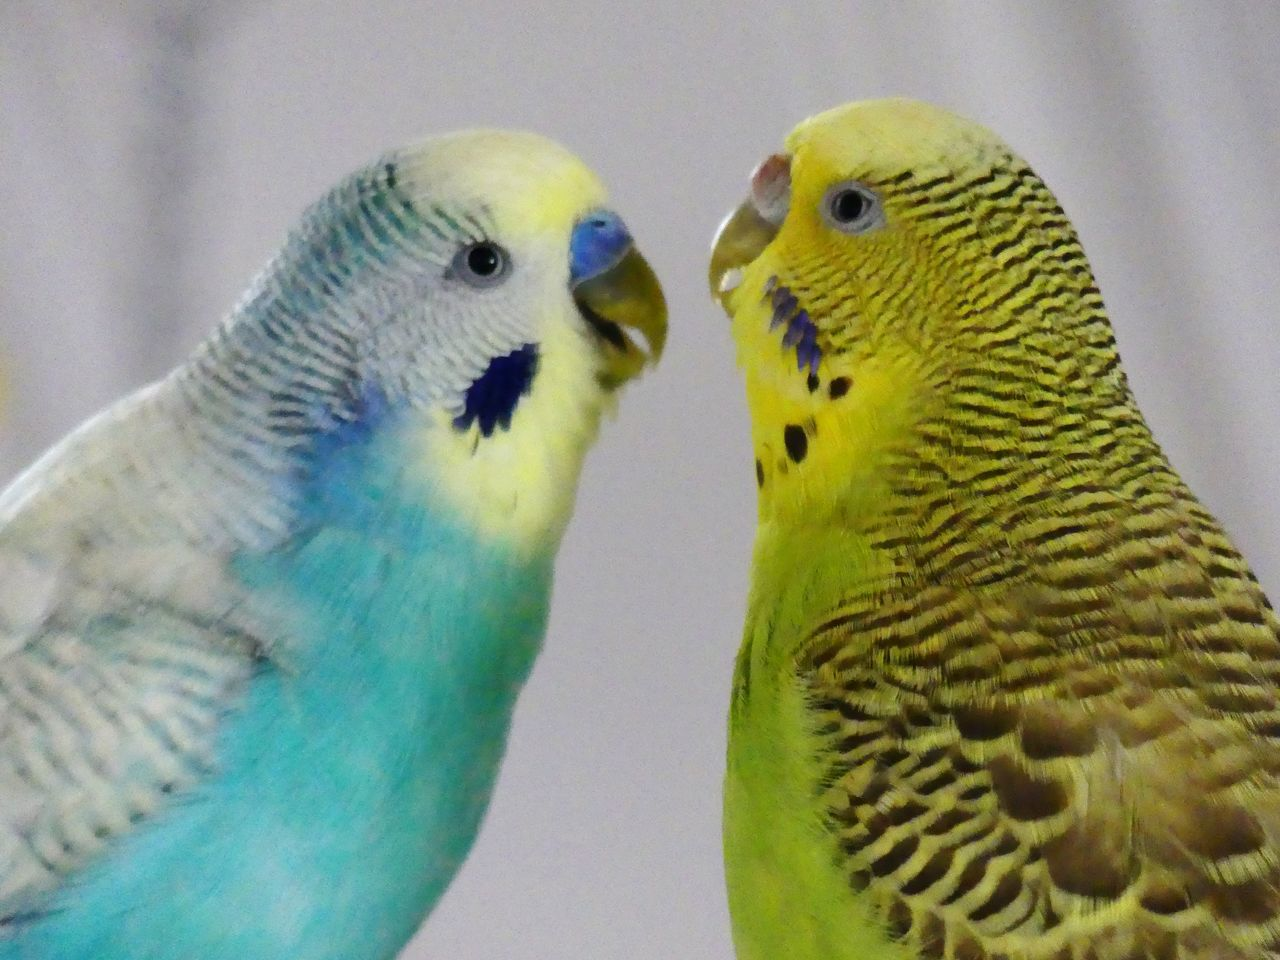 Happy Anímals Life In Motion Life In Colors Loughing Parrot Bird Budgerigar Two Animals Animal Wildlife Affectionate Togetherness Animal Themes Pets Close-up Lovers Birds_collection Animal_collection Posing For The Camera Rainbow Colors Colors